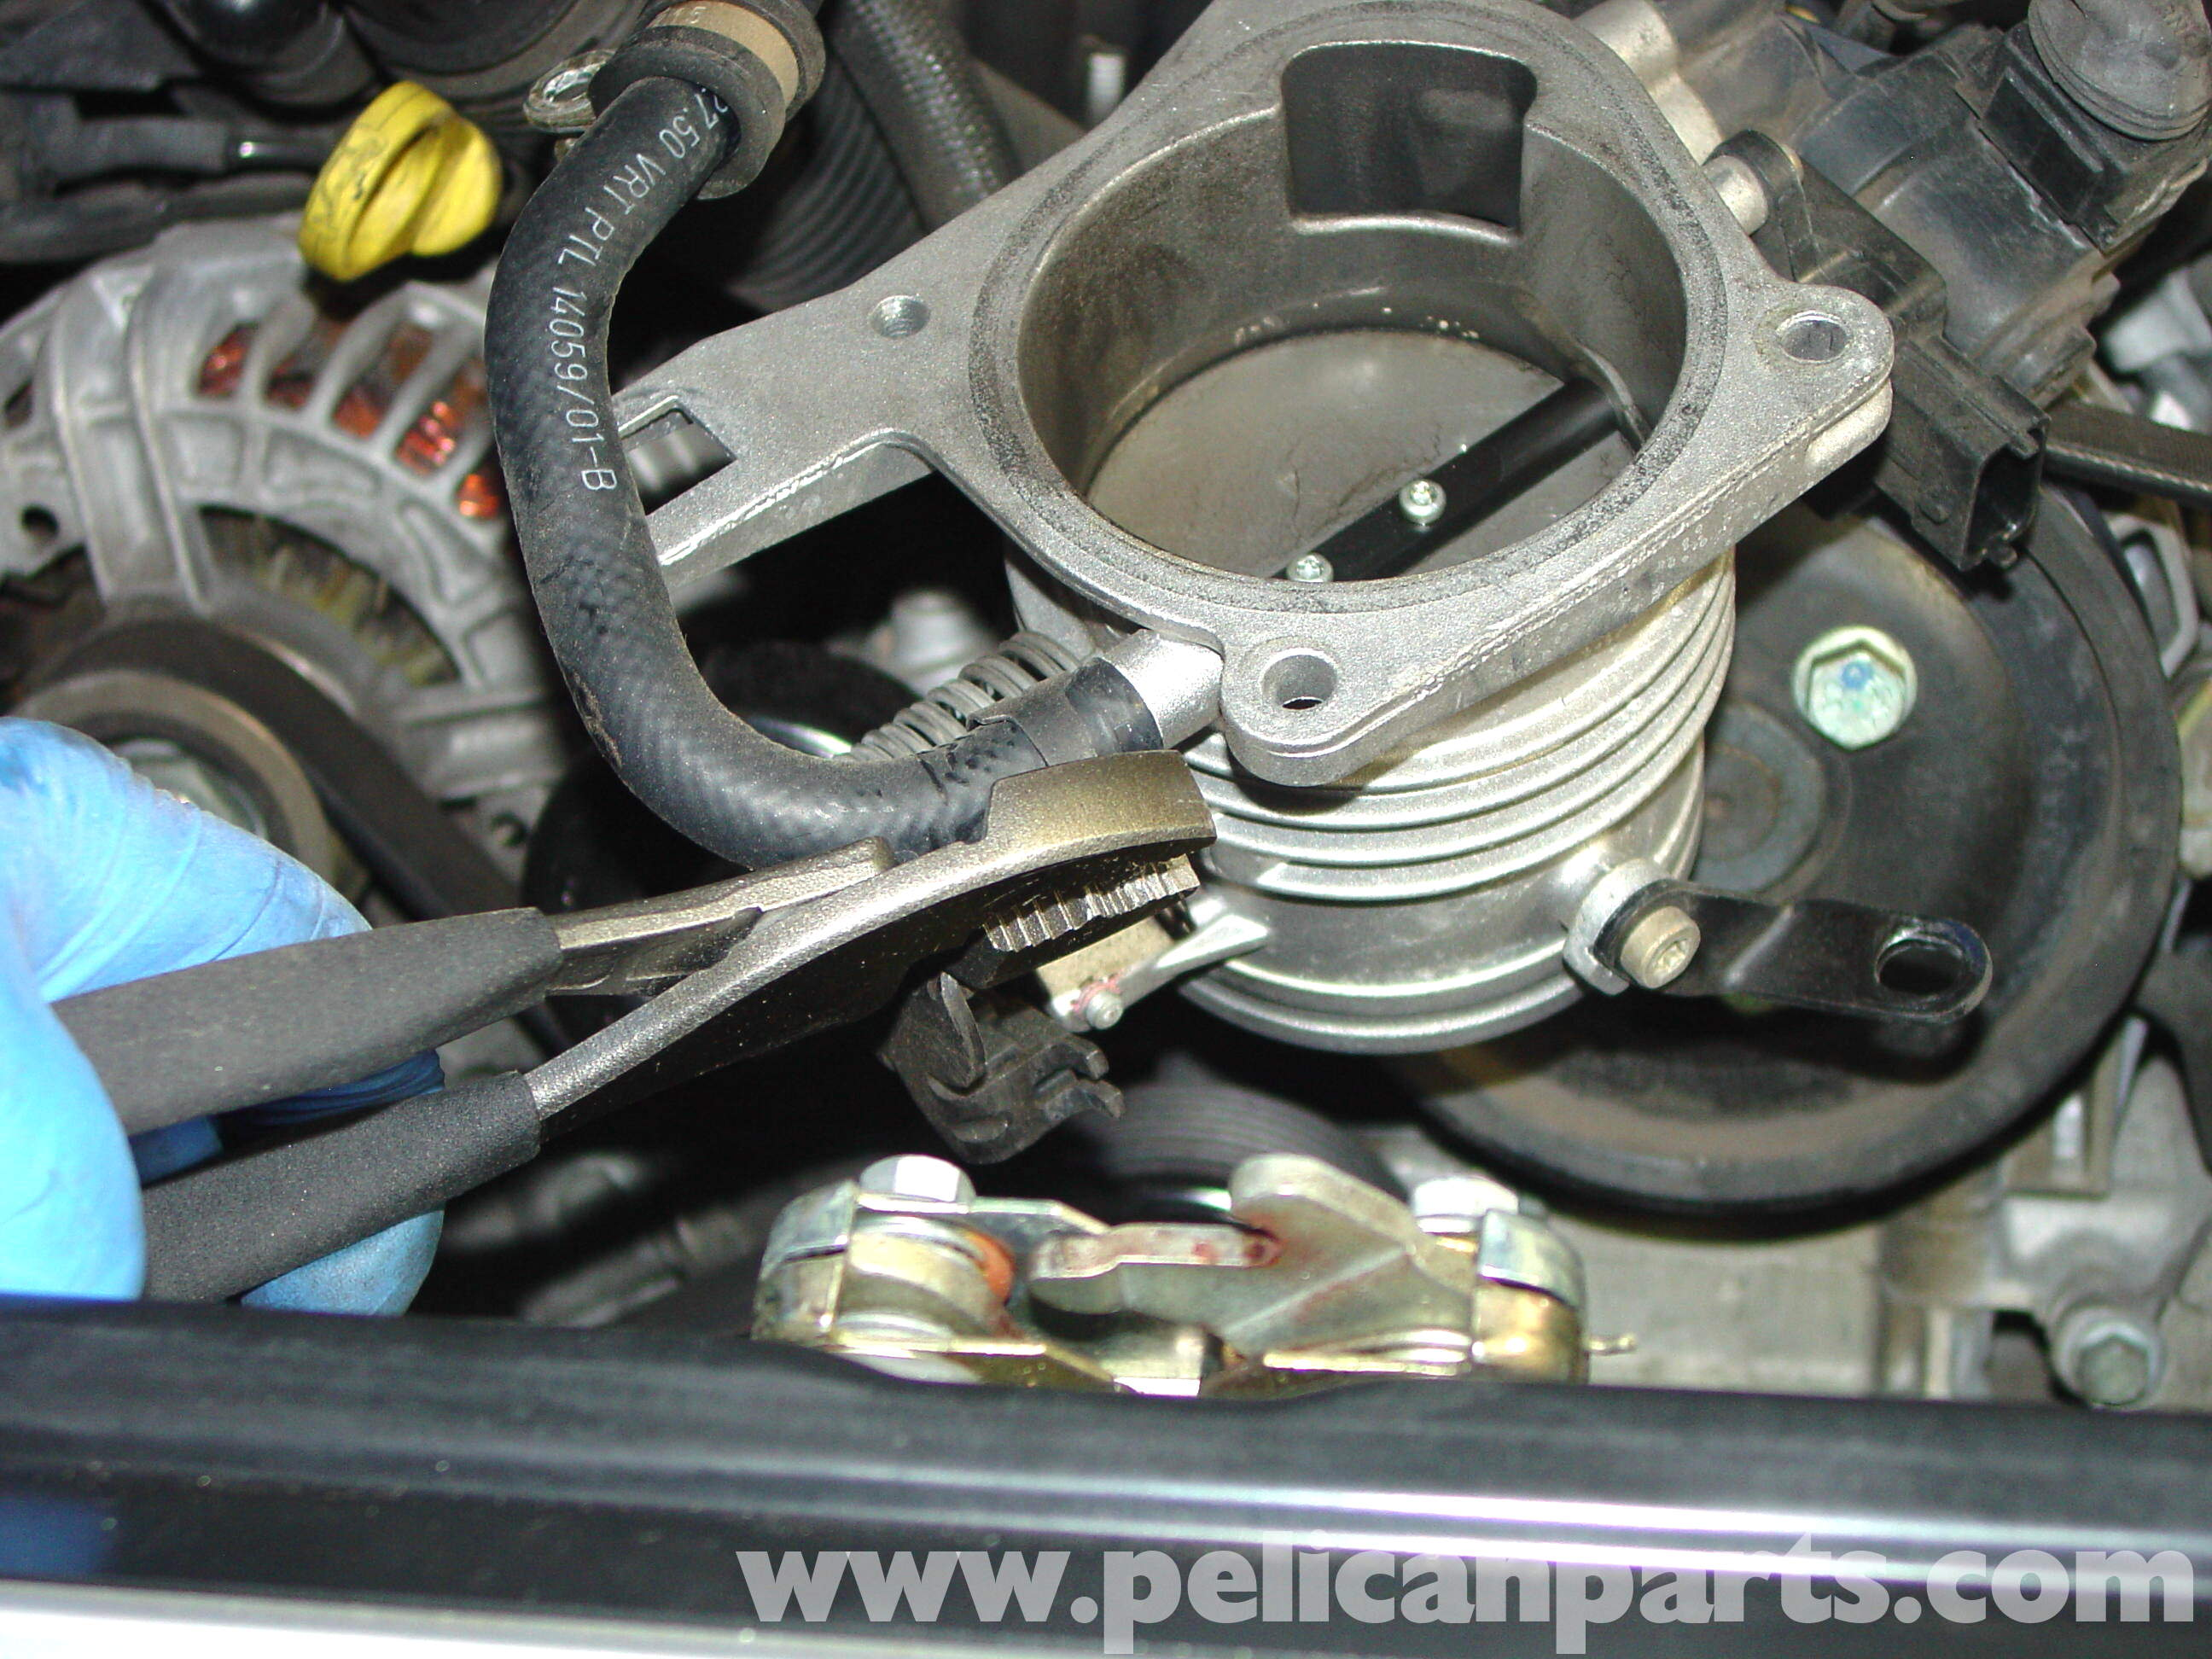 Porsche Boxster Camshaft Diagram Schematics Data Wiring Diagrams Fuse Box 996 Air Oil Separator Location Free Engine Image For User Manual Download